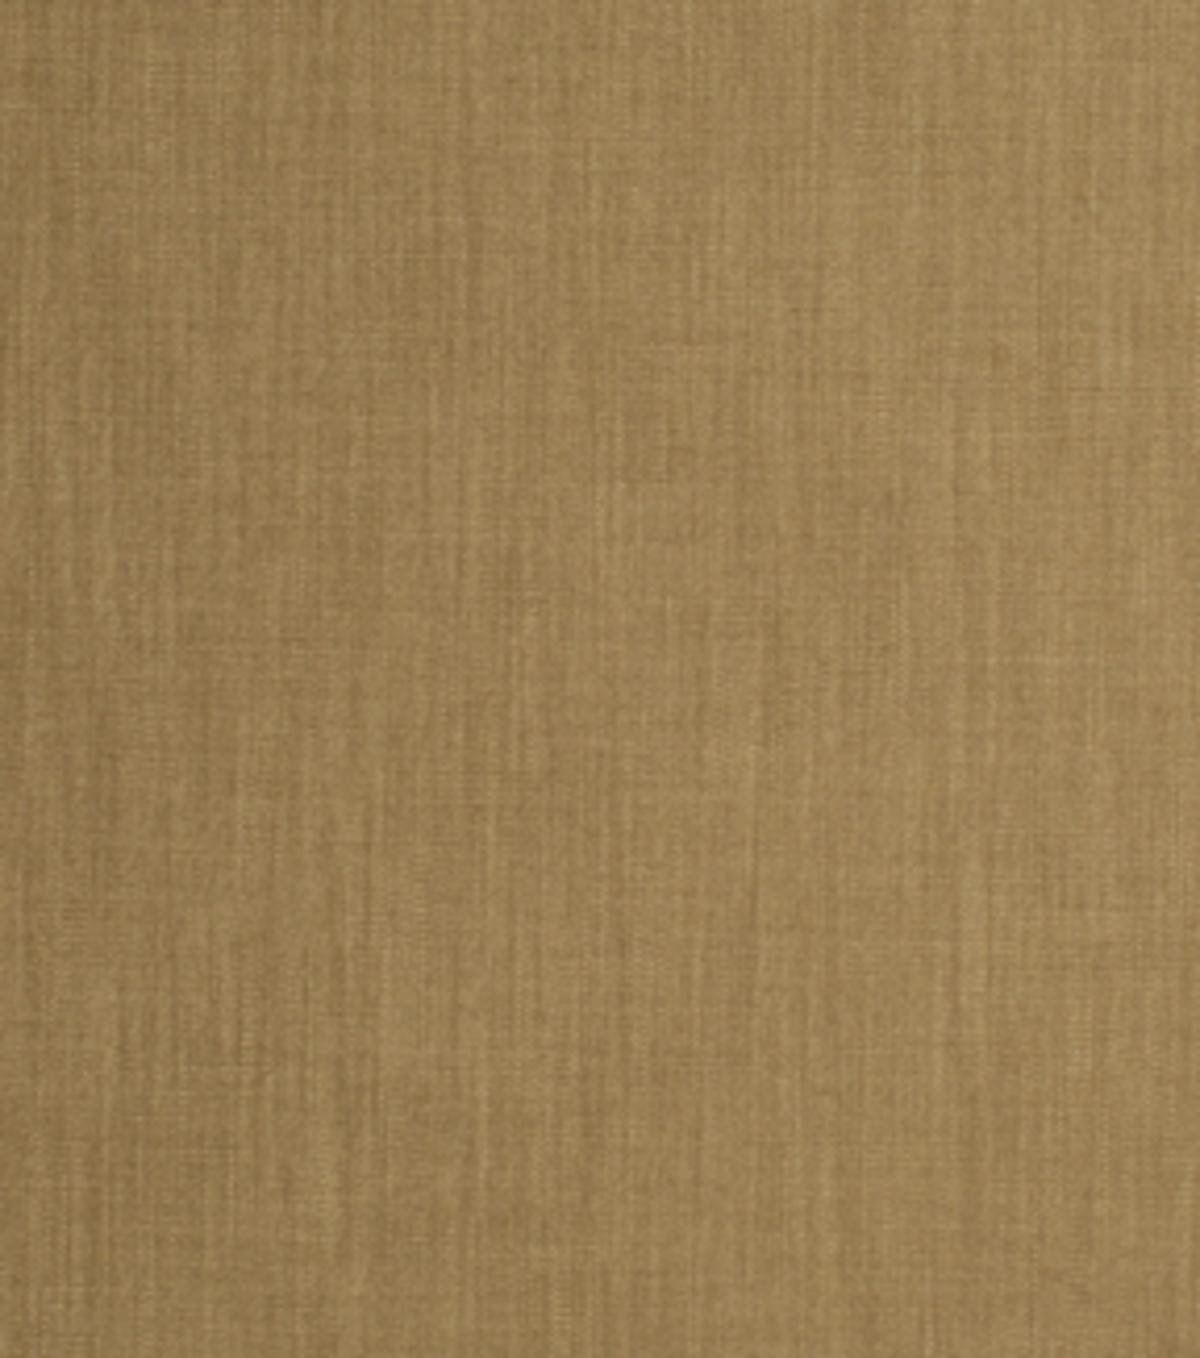 Home Decor 8\u0022x8\u0022 Fabric Swatch-Signature Series Media Hemp